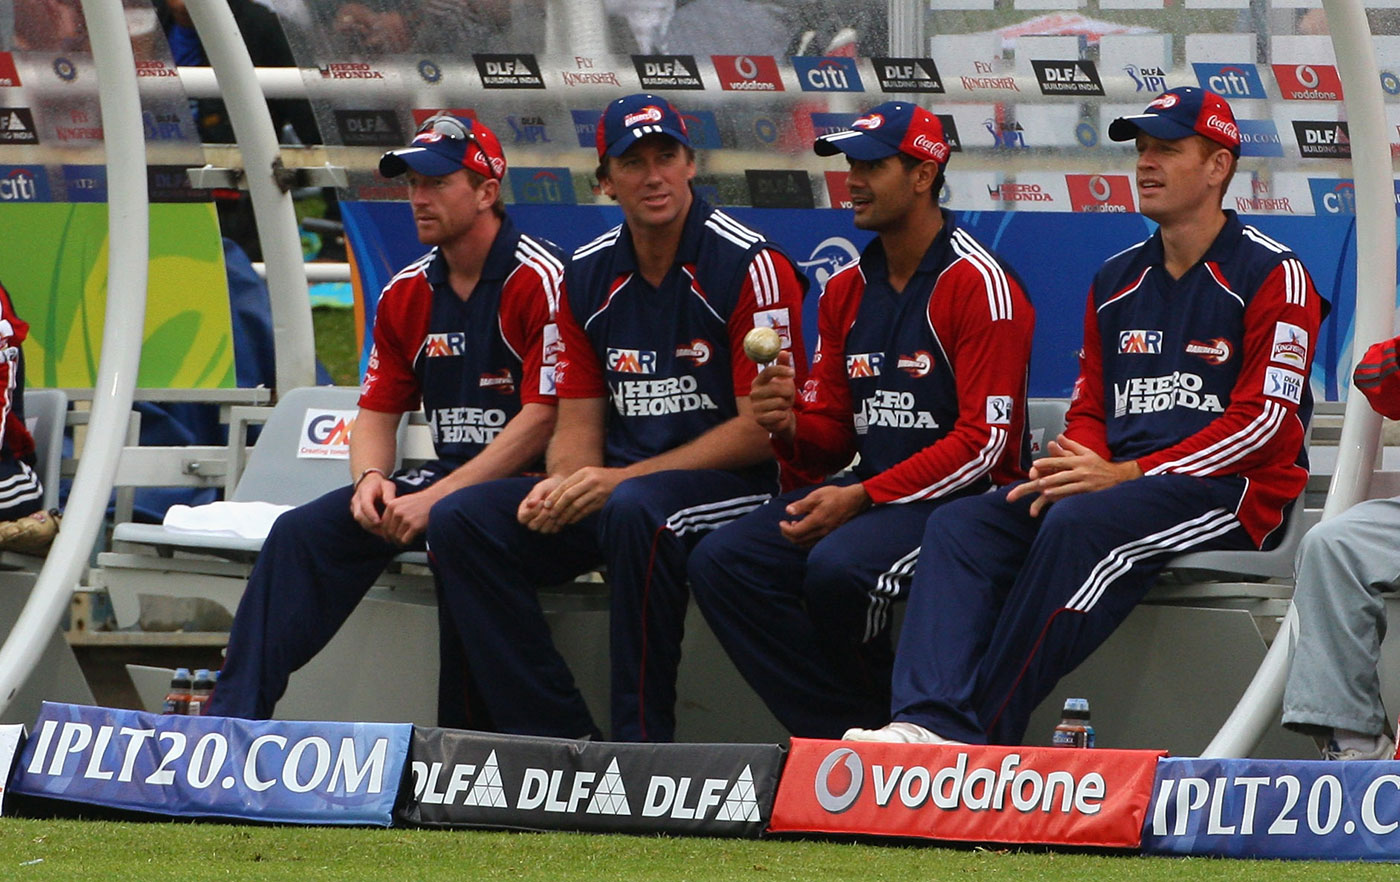 Excess baggage: past his prime, McGrath (second from left) had to deal with being benched in the IPL